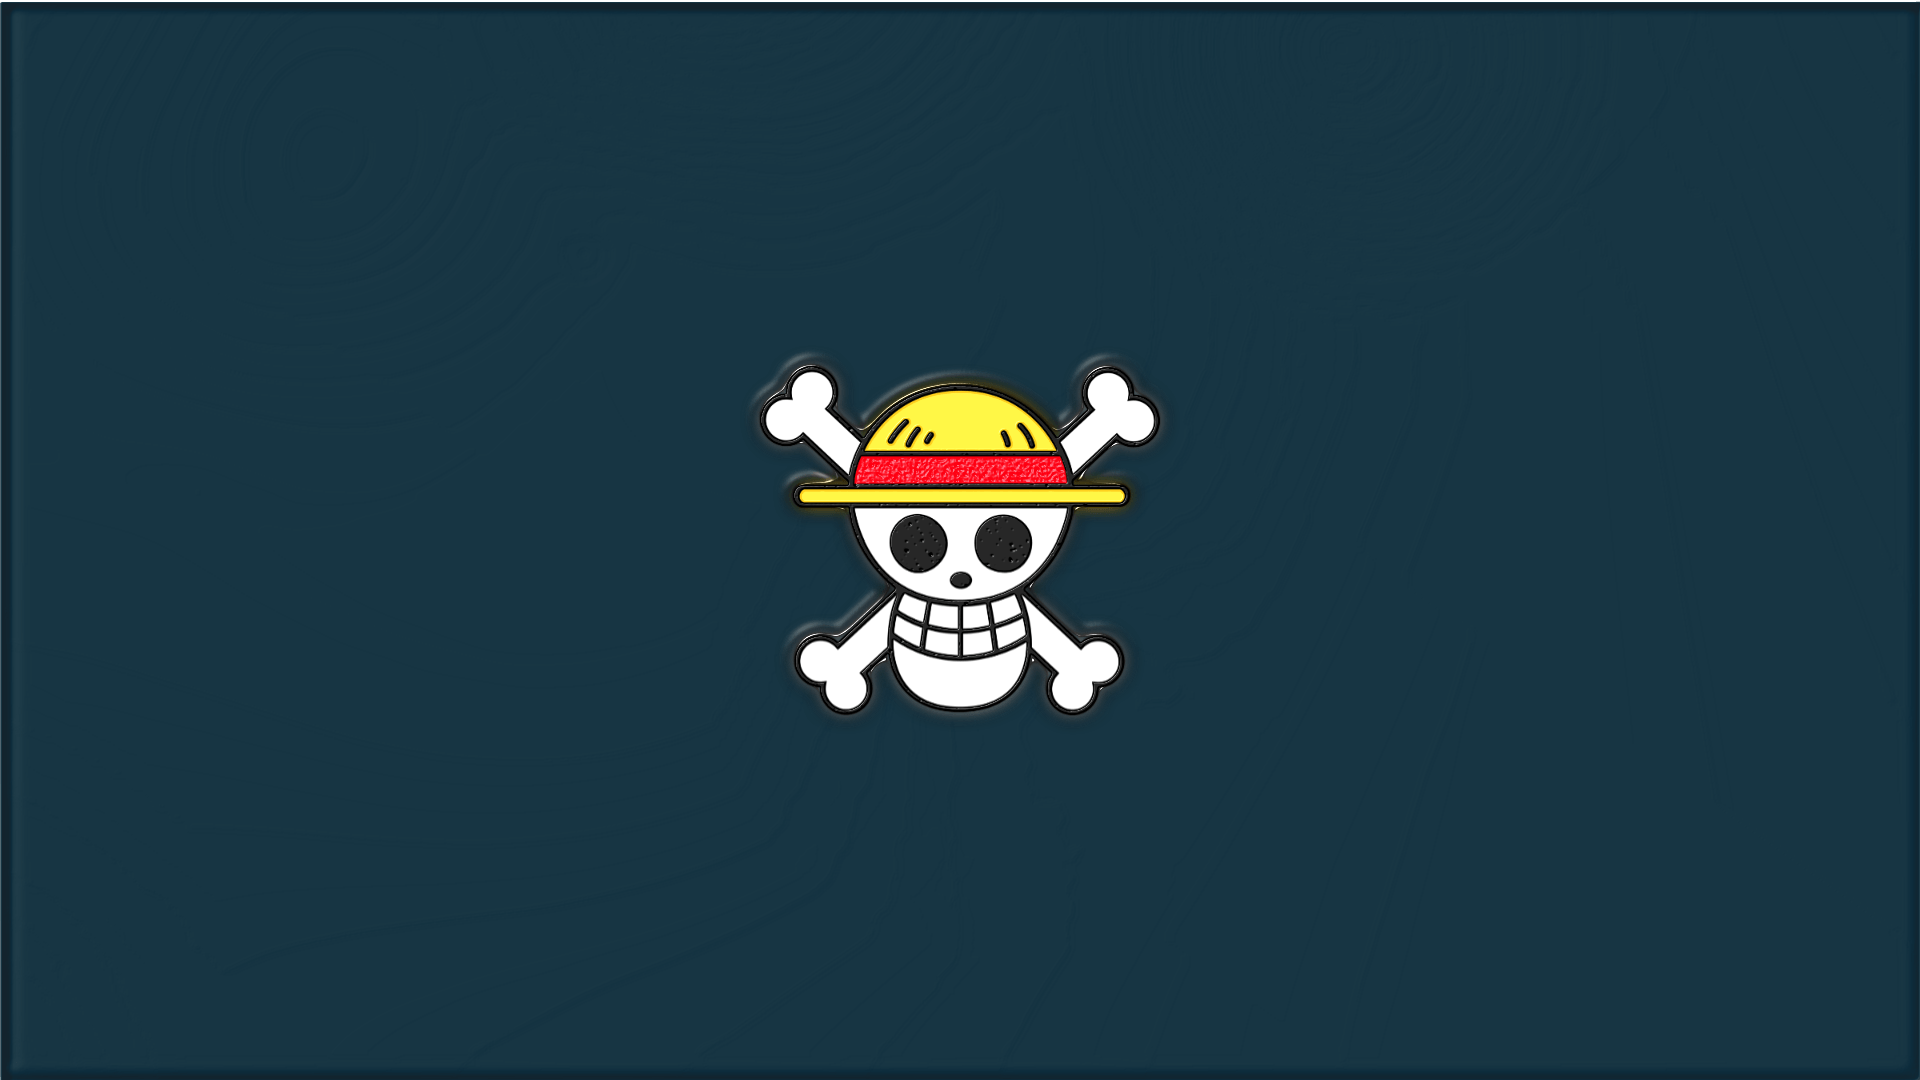 One Piece Wallpapers - Top Free One Piece Backgrounds